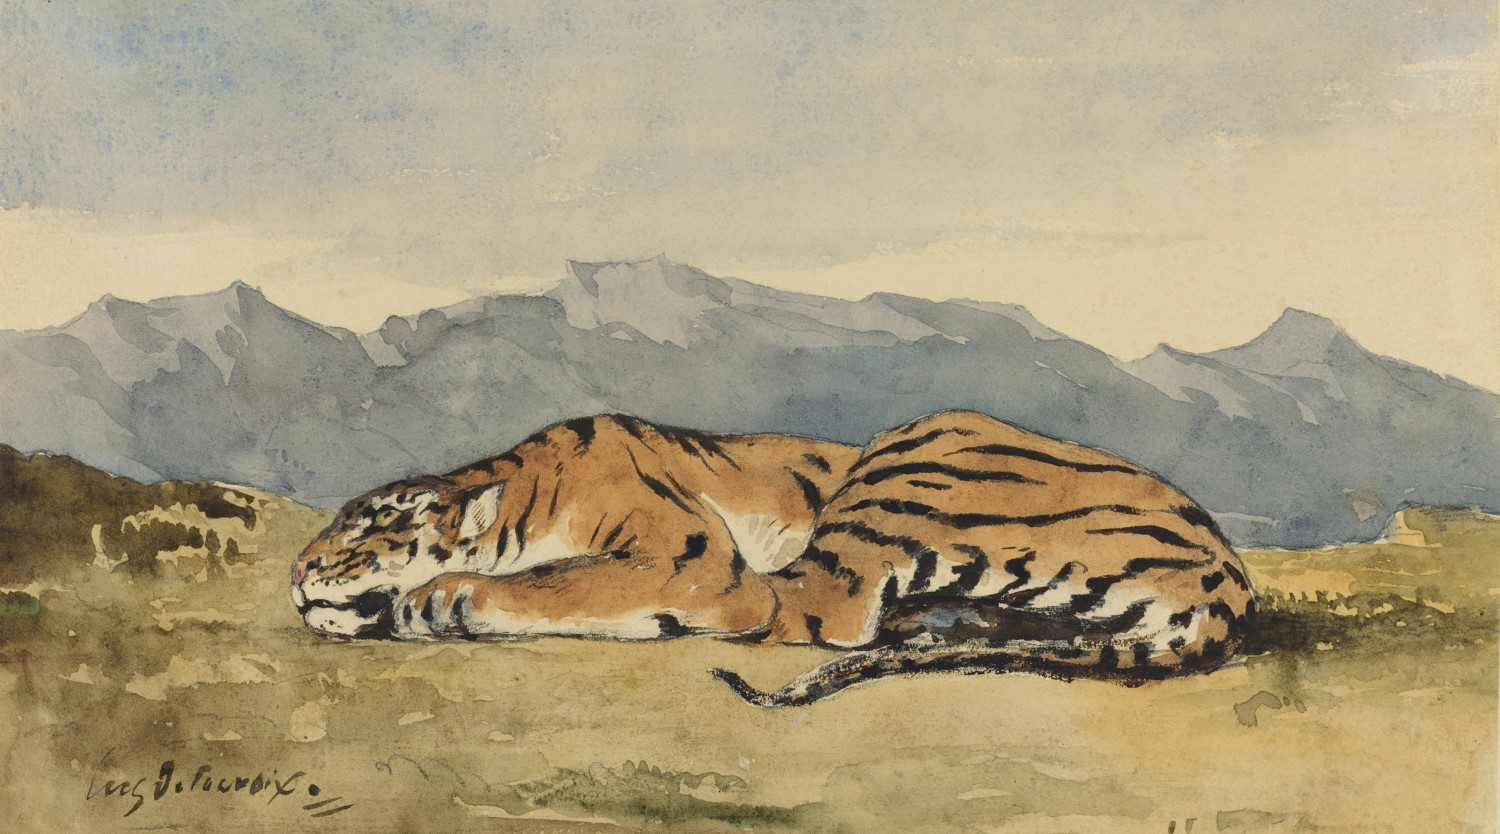 Eugène Delacroix, Tiger, c.1830, watercolour,